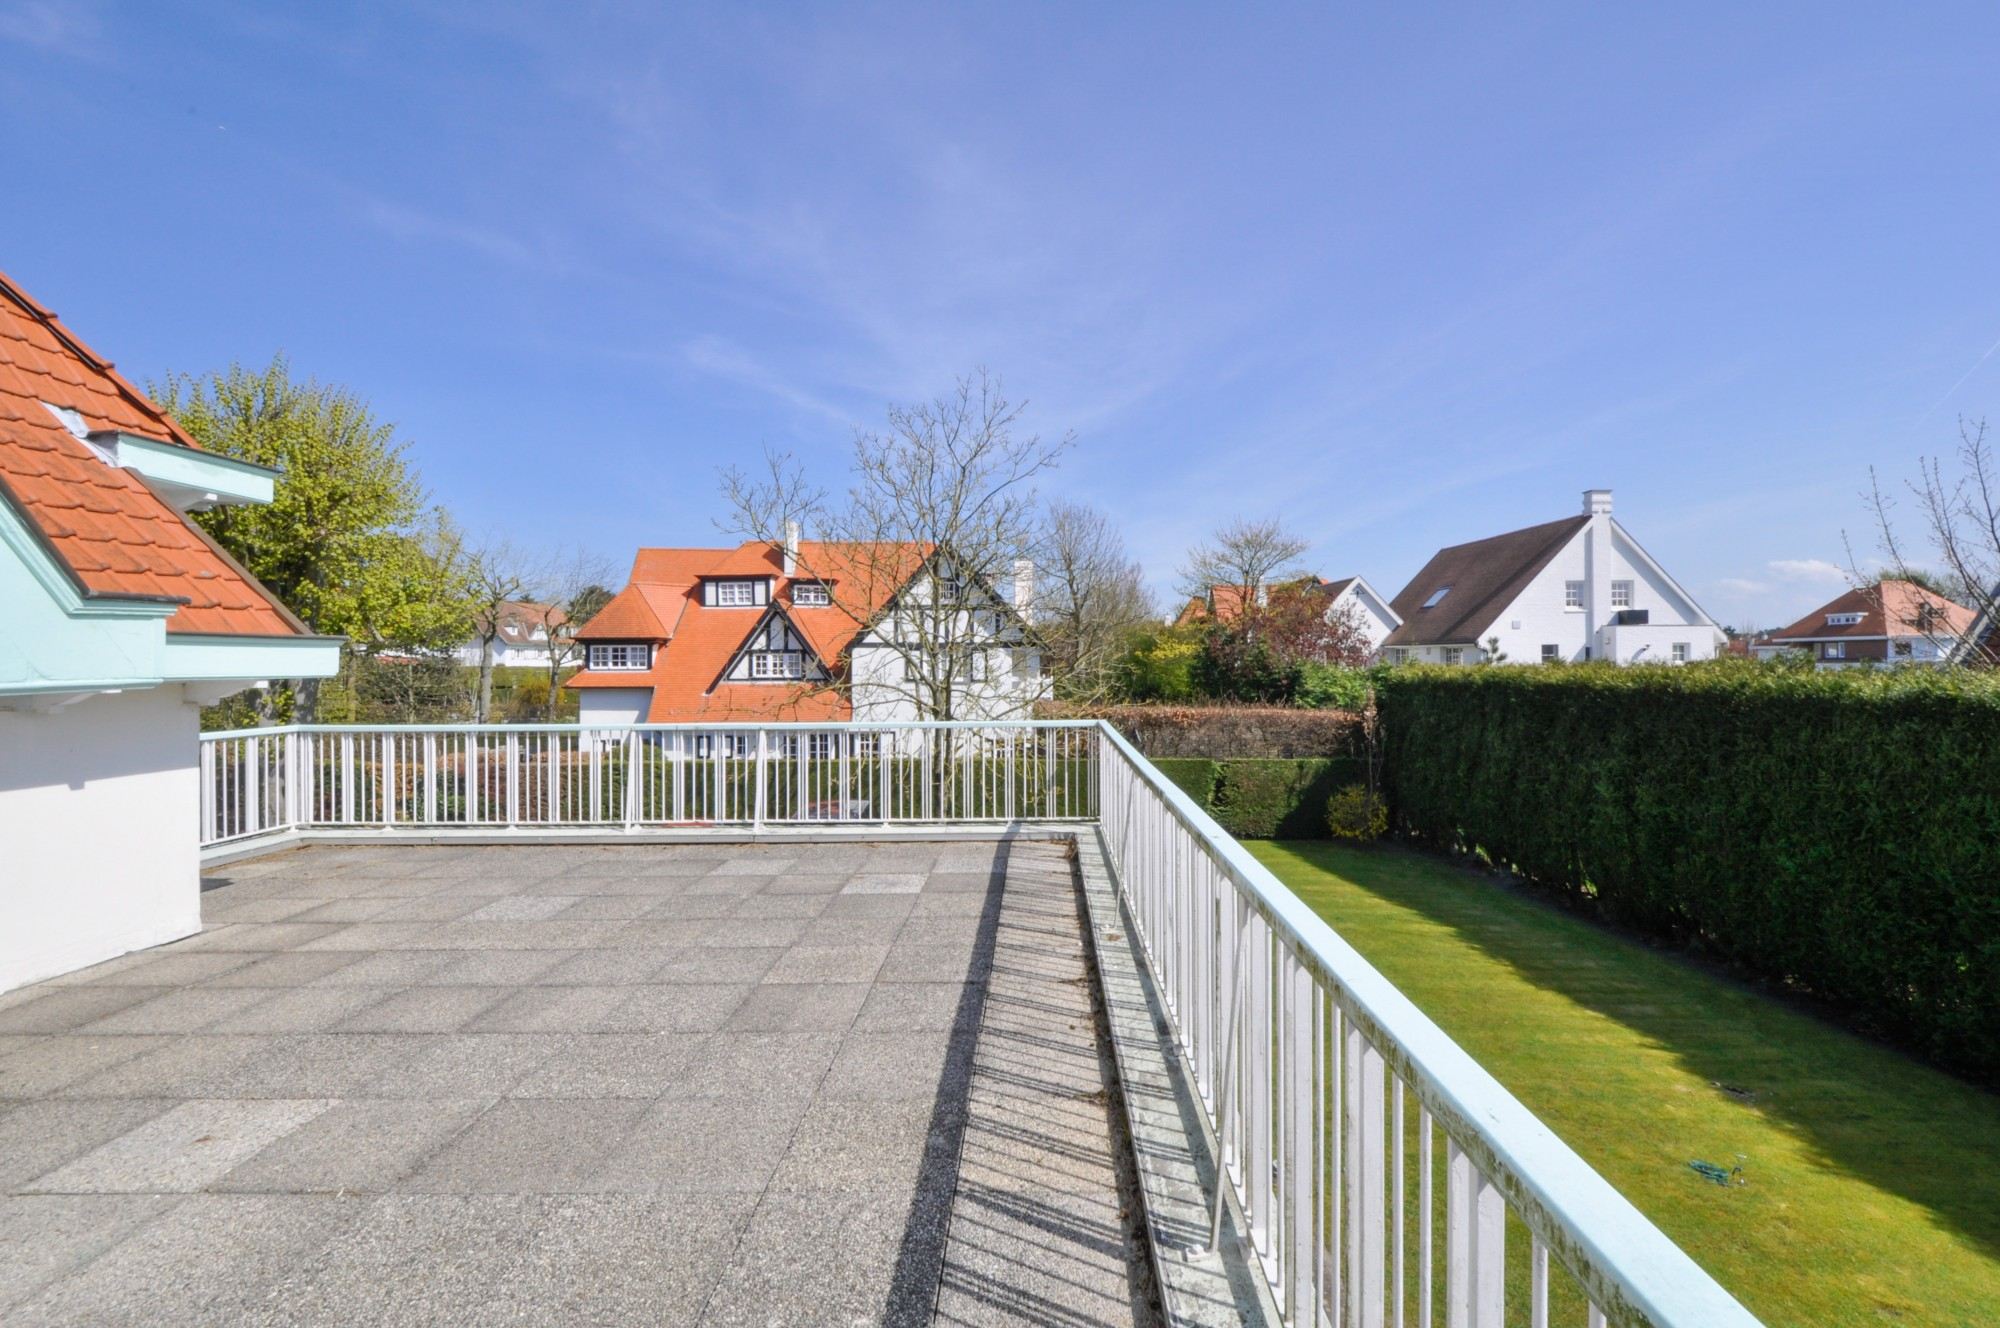 Ventes villa t7 f7 knokke zoute sable d 39 or fochlaan for Agence immobiliere knokke